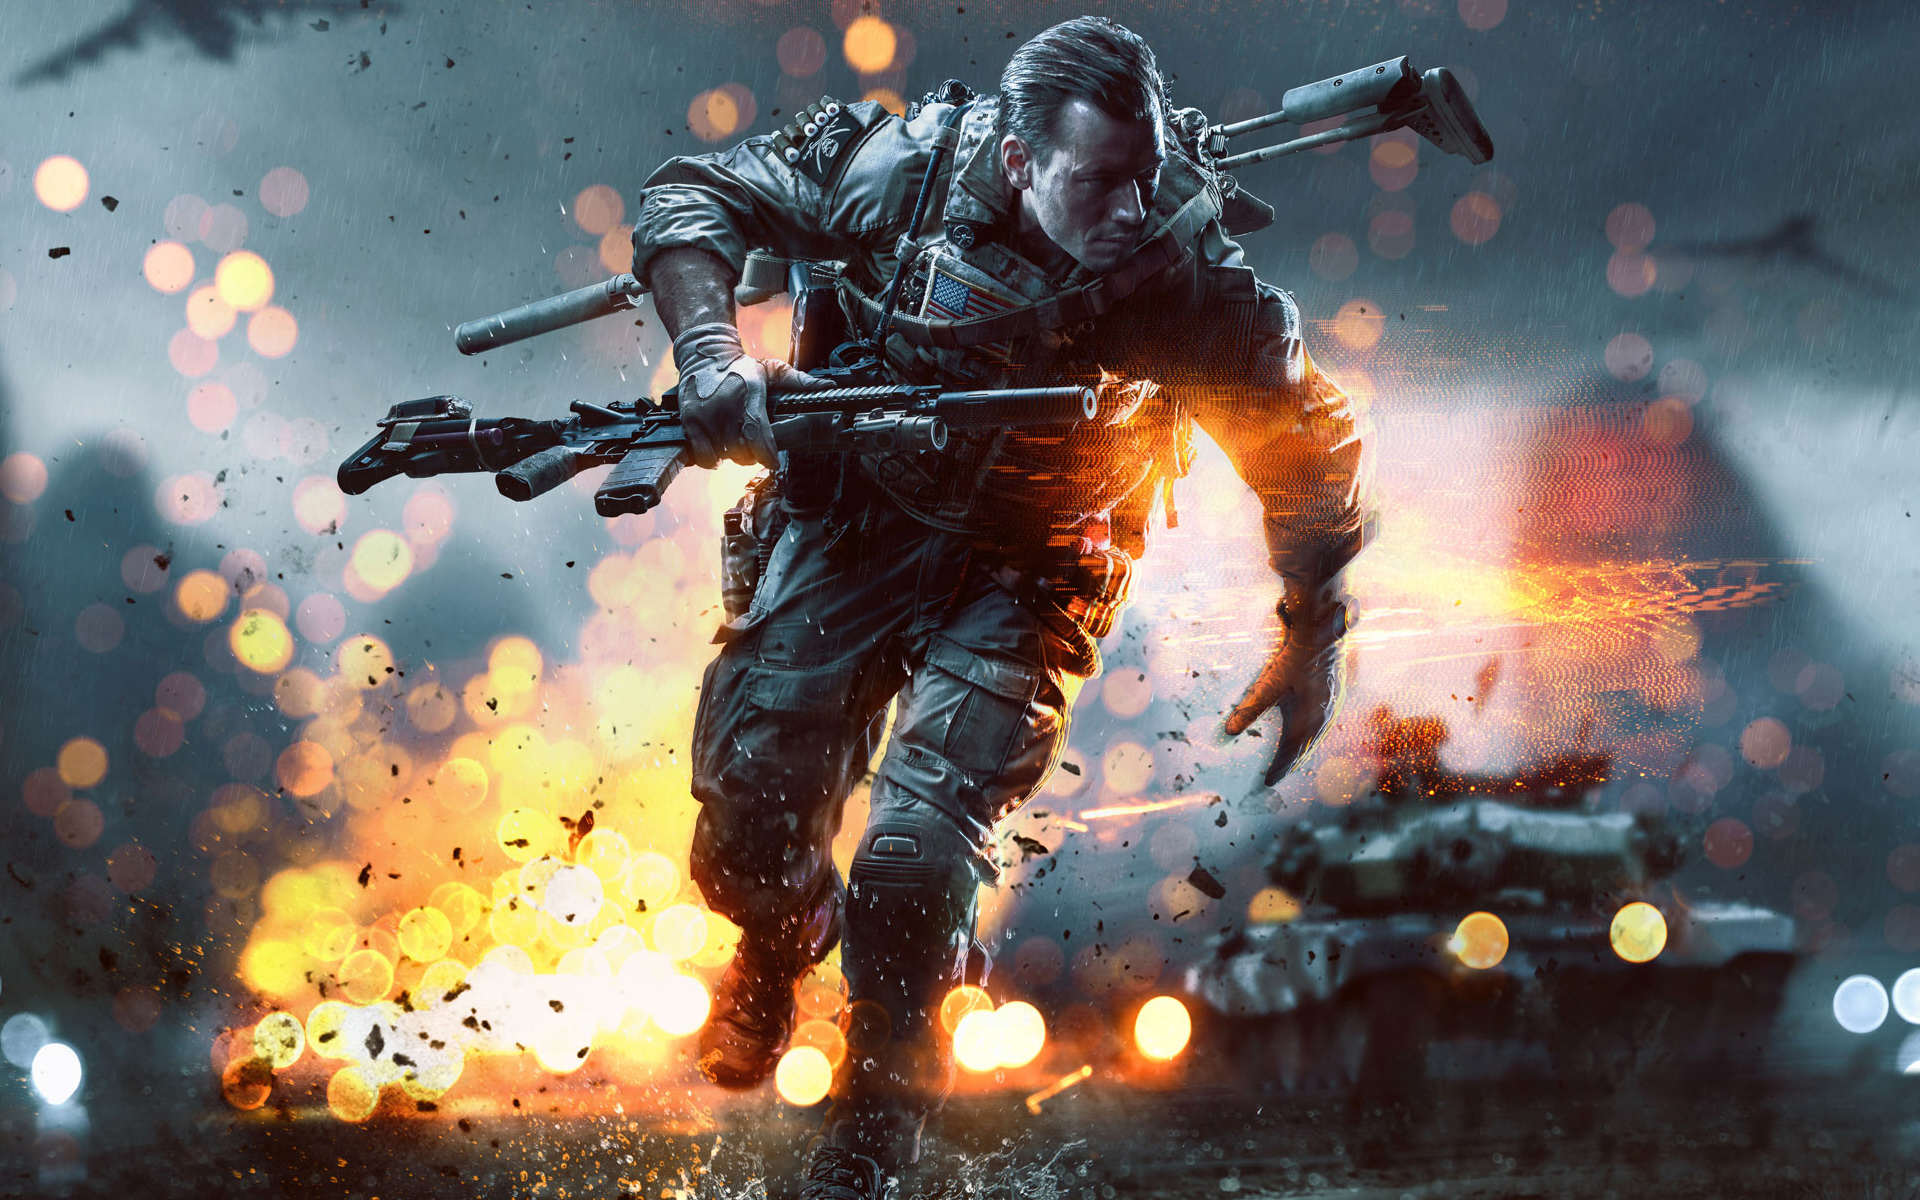 DICE Just Dropped Some Bad News About Battlefield 4 2308712 8653671235 41034